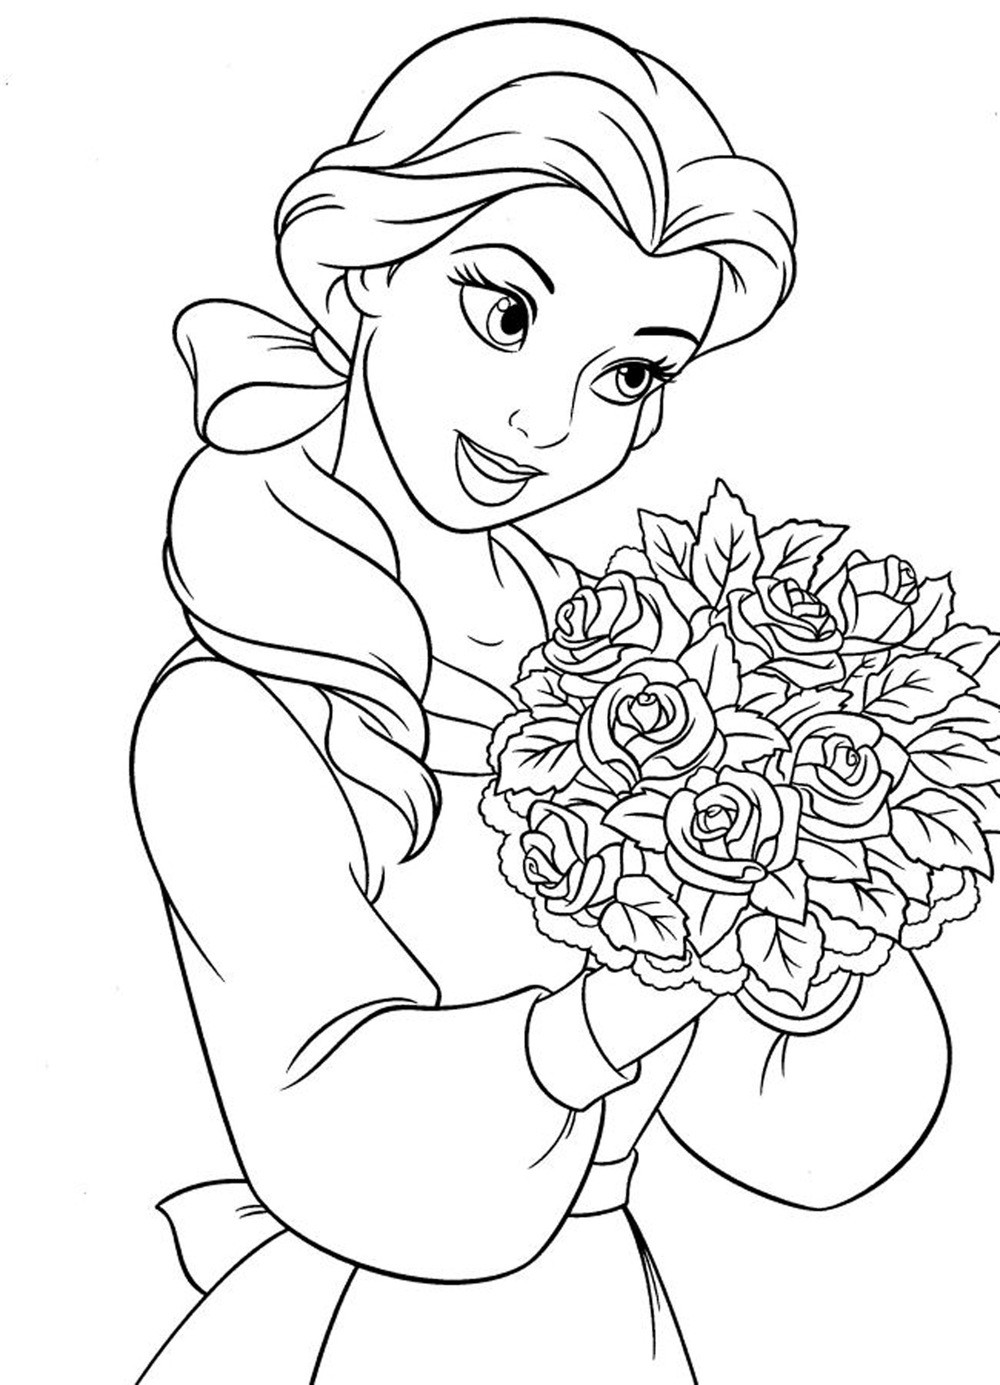 Free Printable Coloring Sheets For Girls  princess coloring pages for girls Free